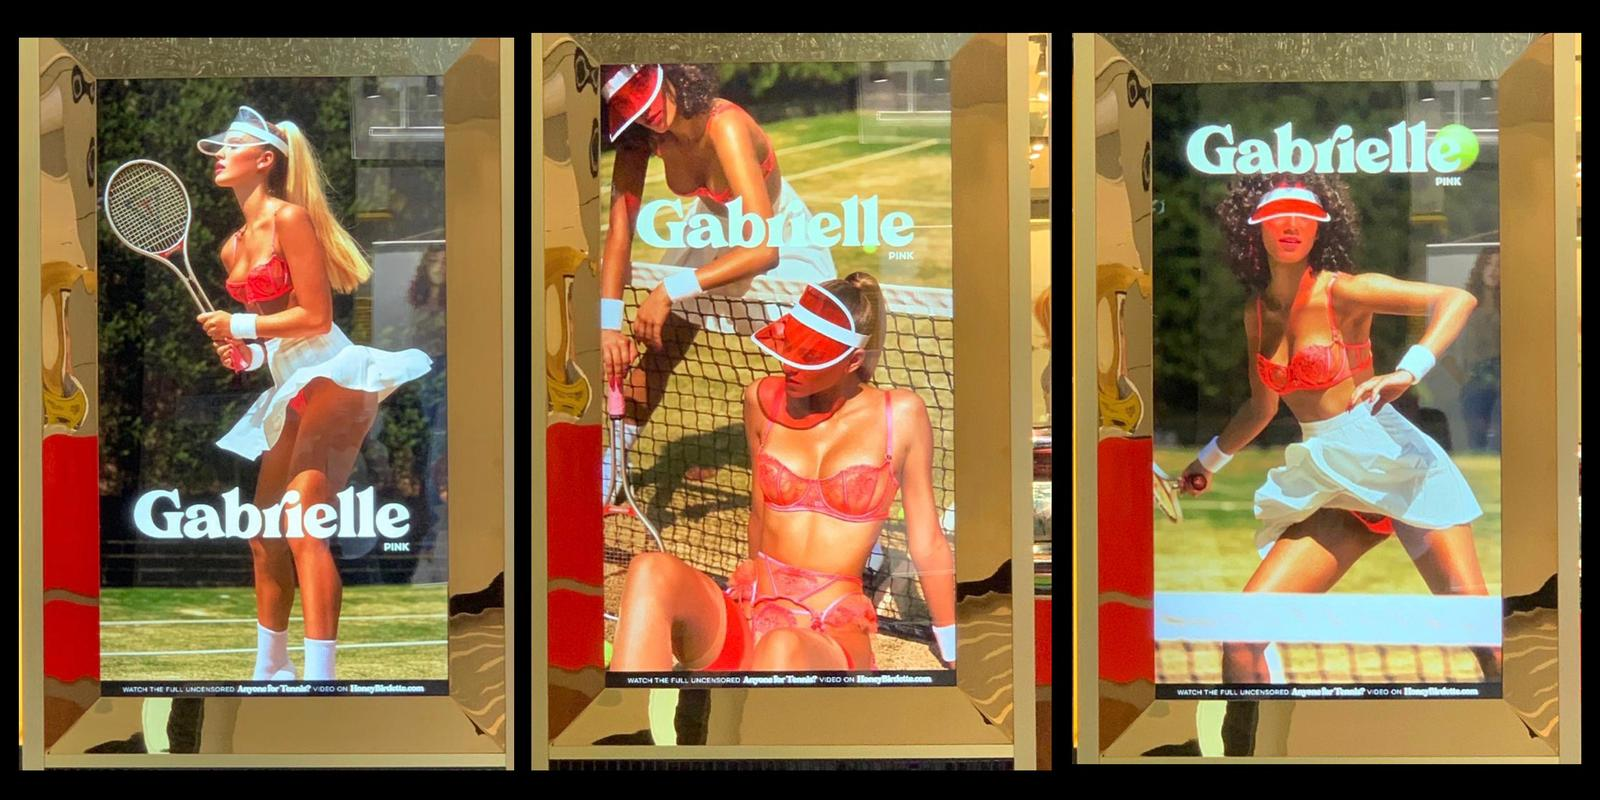 Ad industry self-regulation allows pornified representations of women in sport in shopping centres